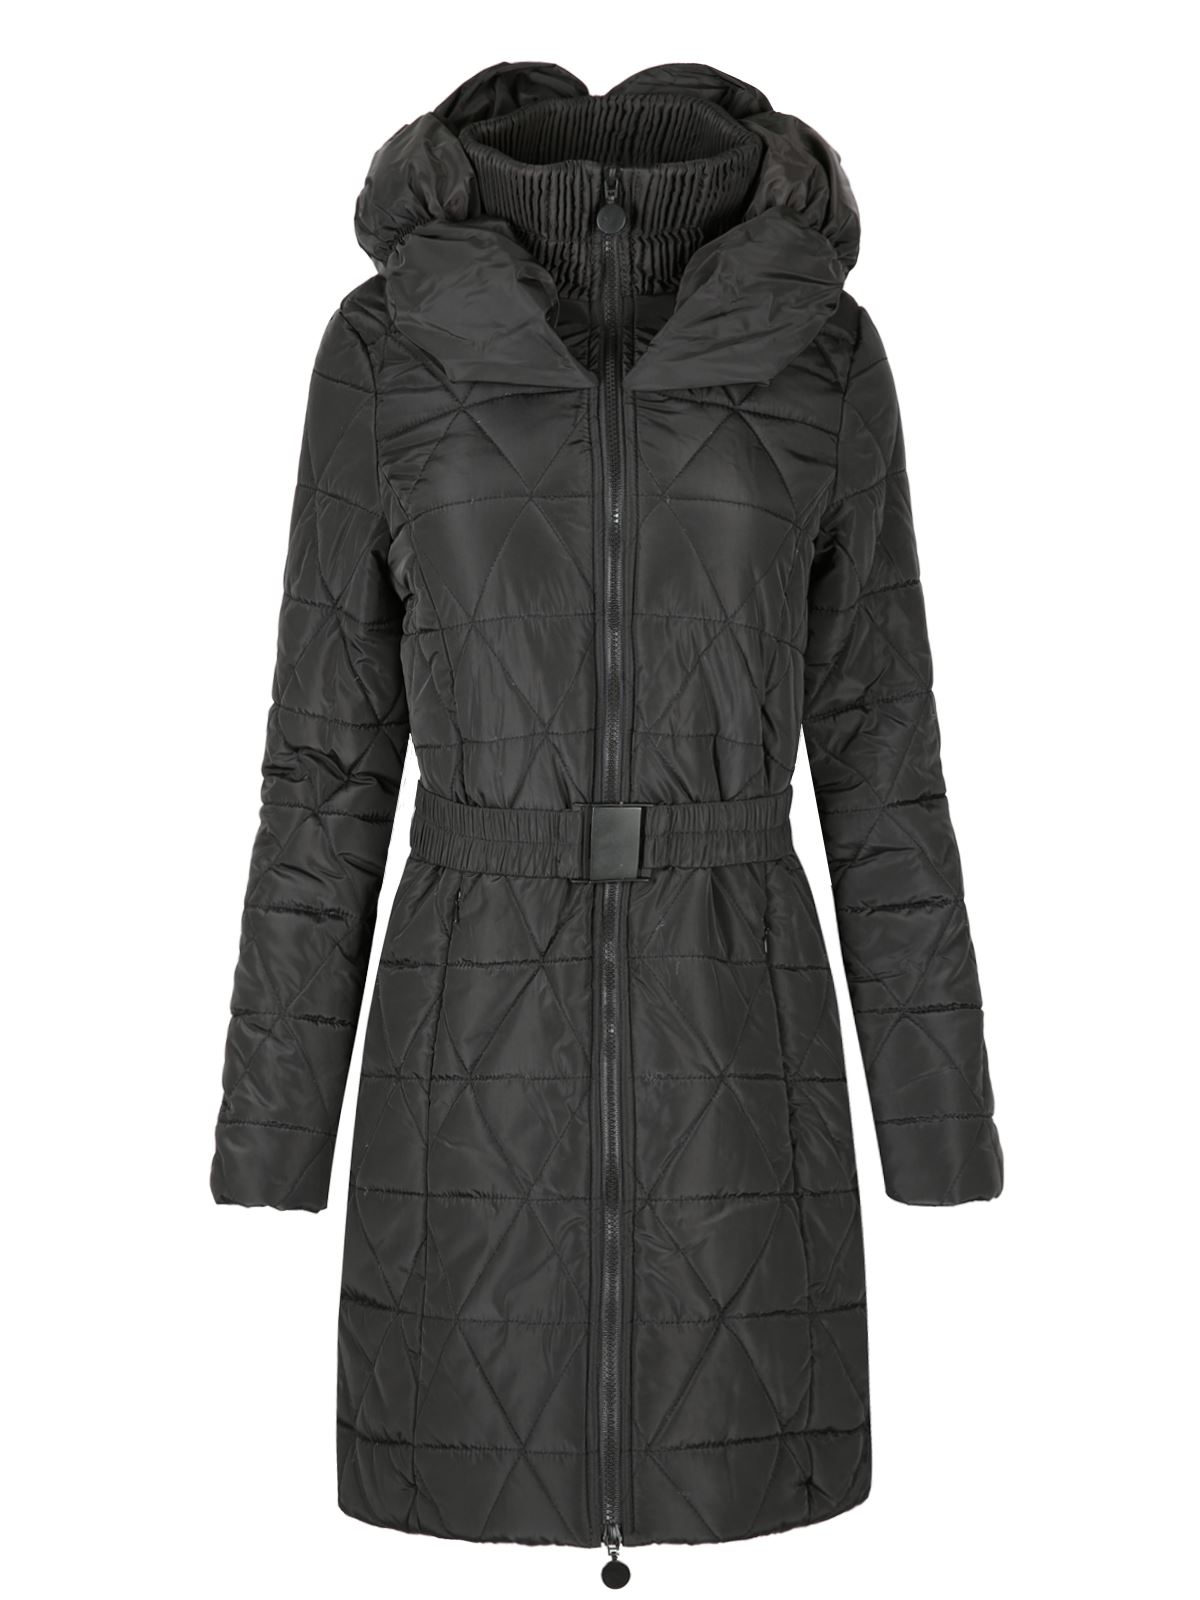 Feb 17, · Help me find the warmest full length winter coat in the world. I currently have a Calvin Klein long down coat. It isn't wind proof though and I still feel cold when it gets down to about 10F. This coat is long, warm, and still fairly light and not bulky. When I wear it on very cold days I only feel the cold where the coat stops.